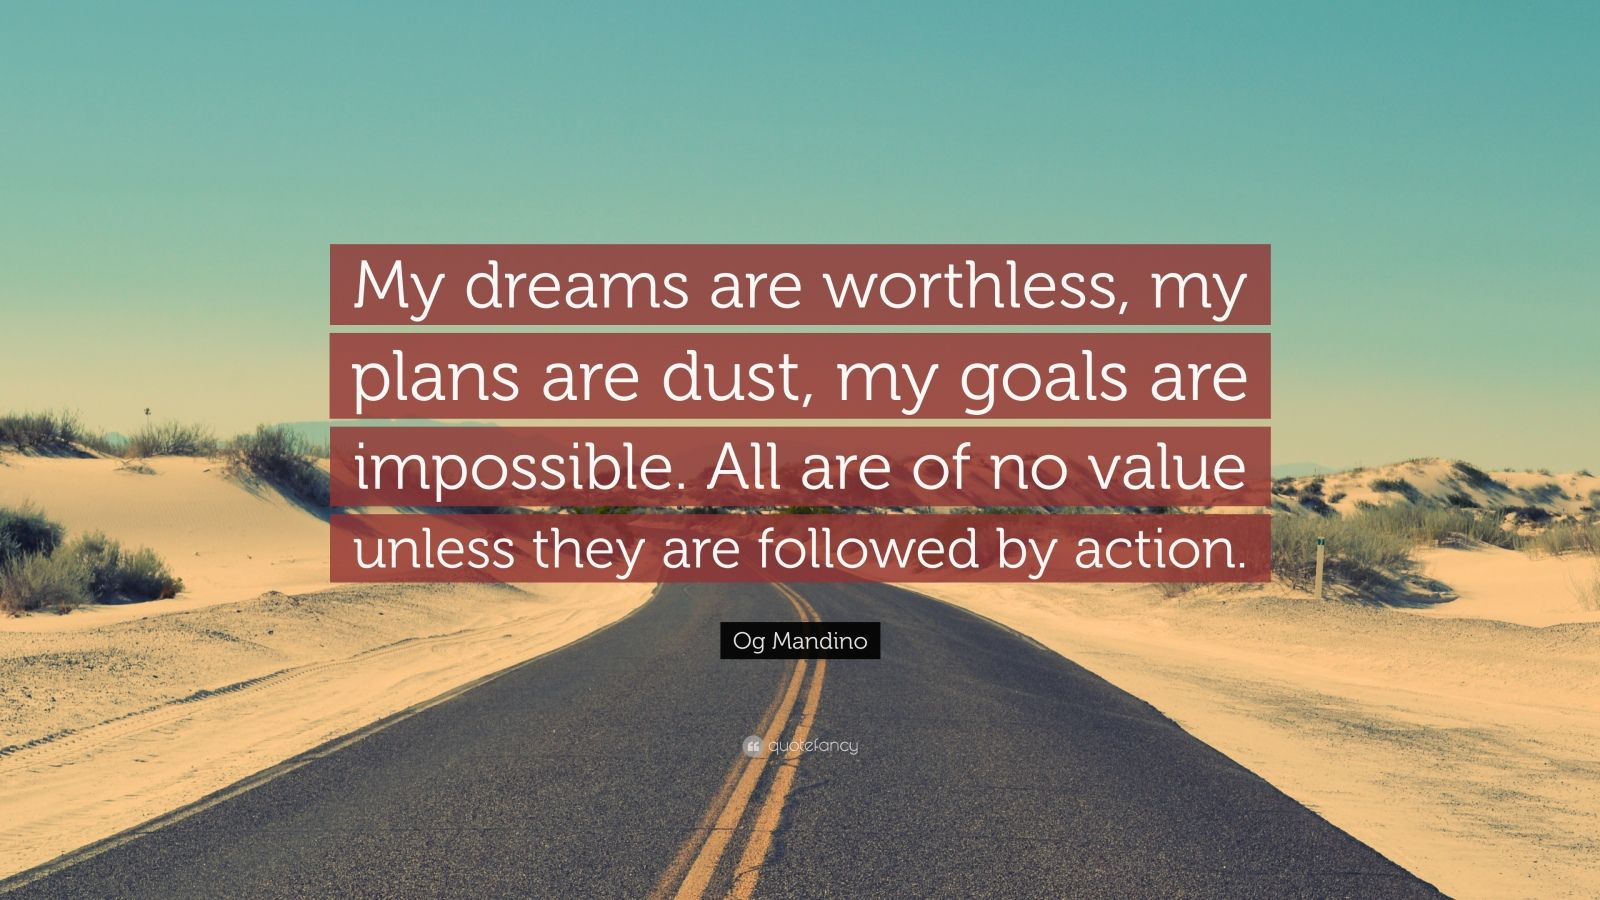 """Og Mandino Quote: """"My dreams are worthless, my plans are dust, my goals are impossible. All are of no value unless they are followed by action."""""""